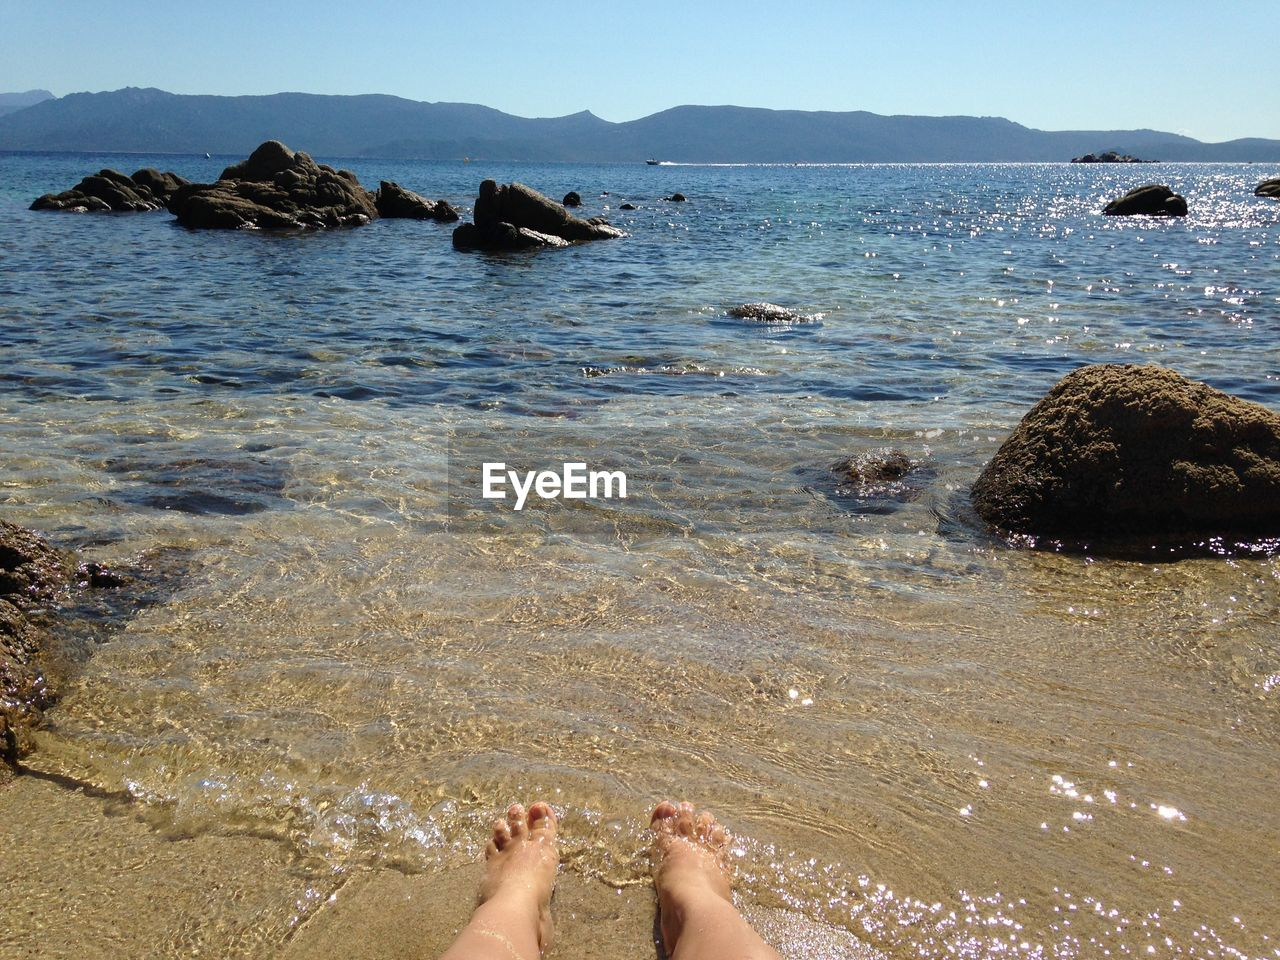 water, low section, human leg, body part, human body part, sea, real people, land, barefoot, nature, one person, beach, day, human foot, personal perspective, lifestyles, sunlight, leisure activity, rock, outdoors